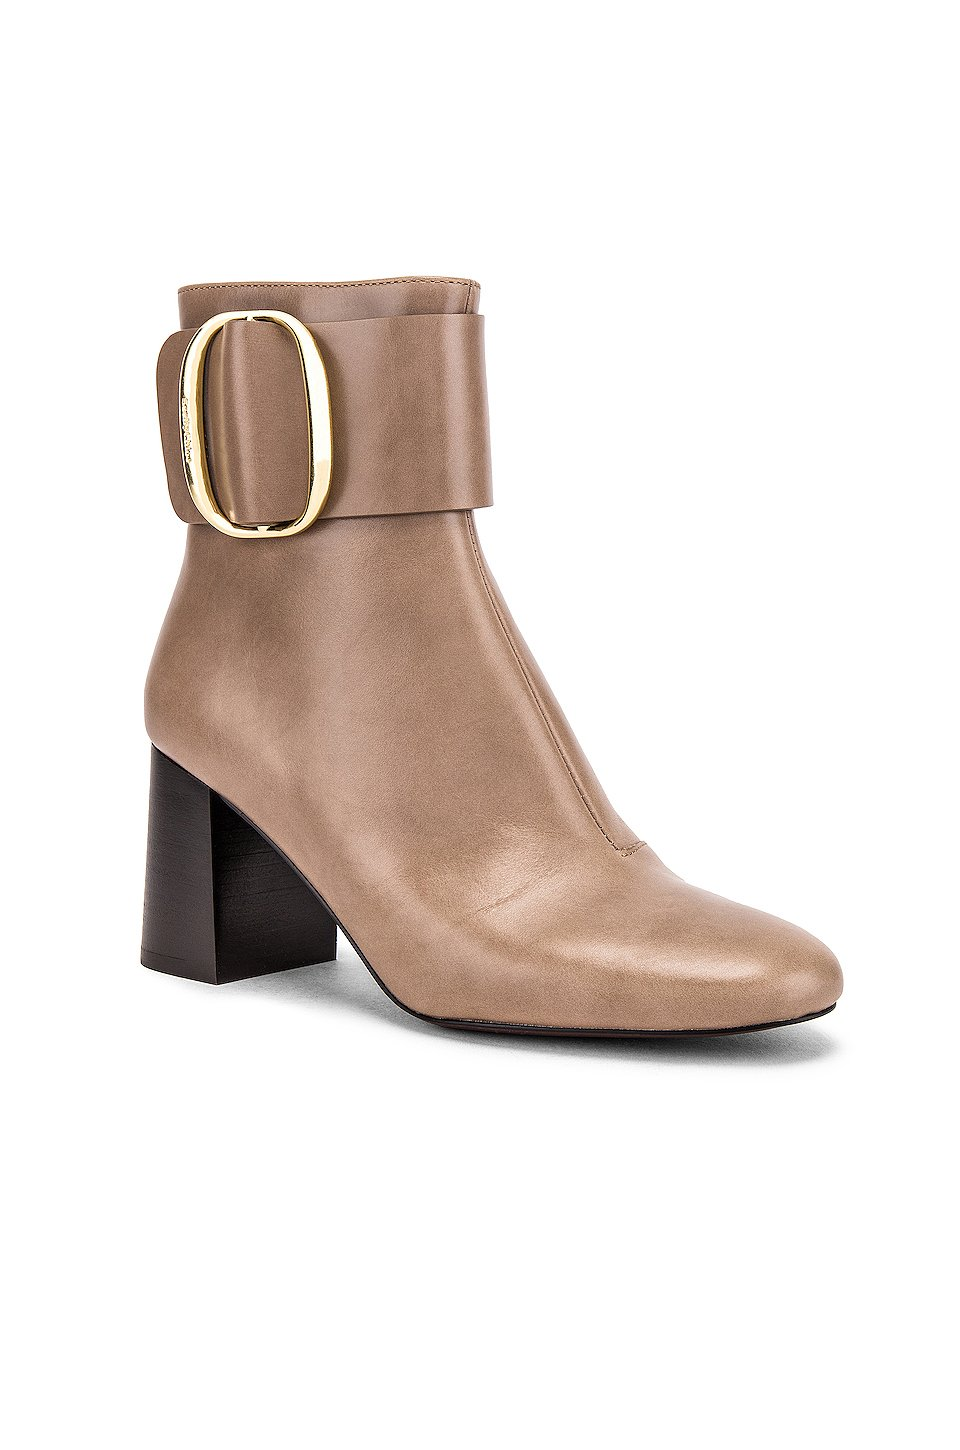 Onward Luxury Group SHOE See by Chloé | Hopper Boot High - Taupe